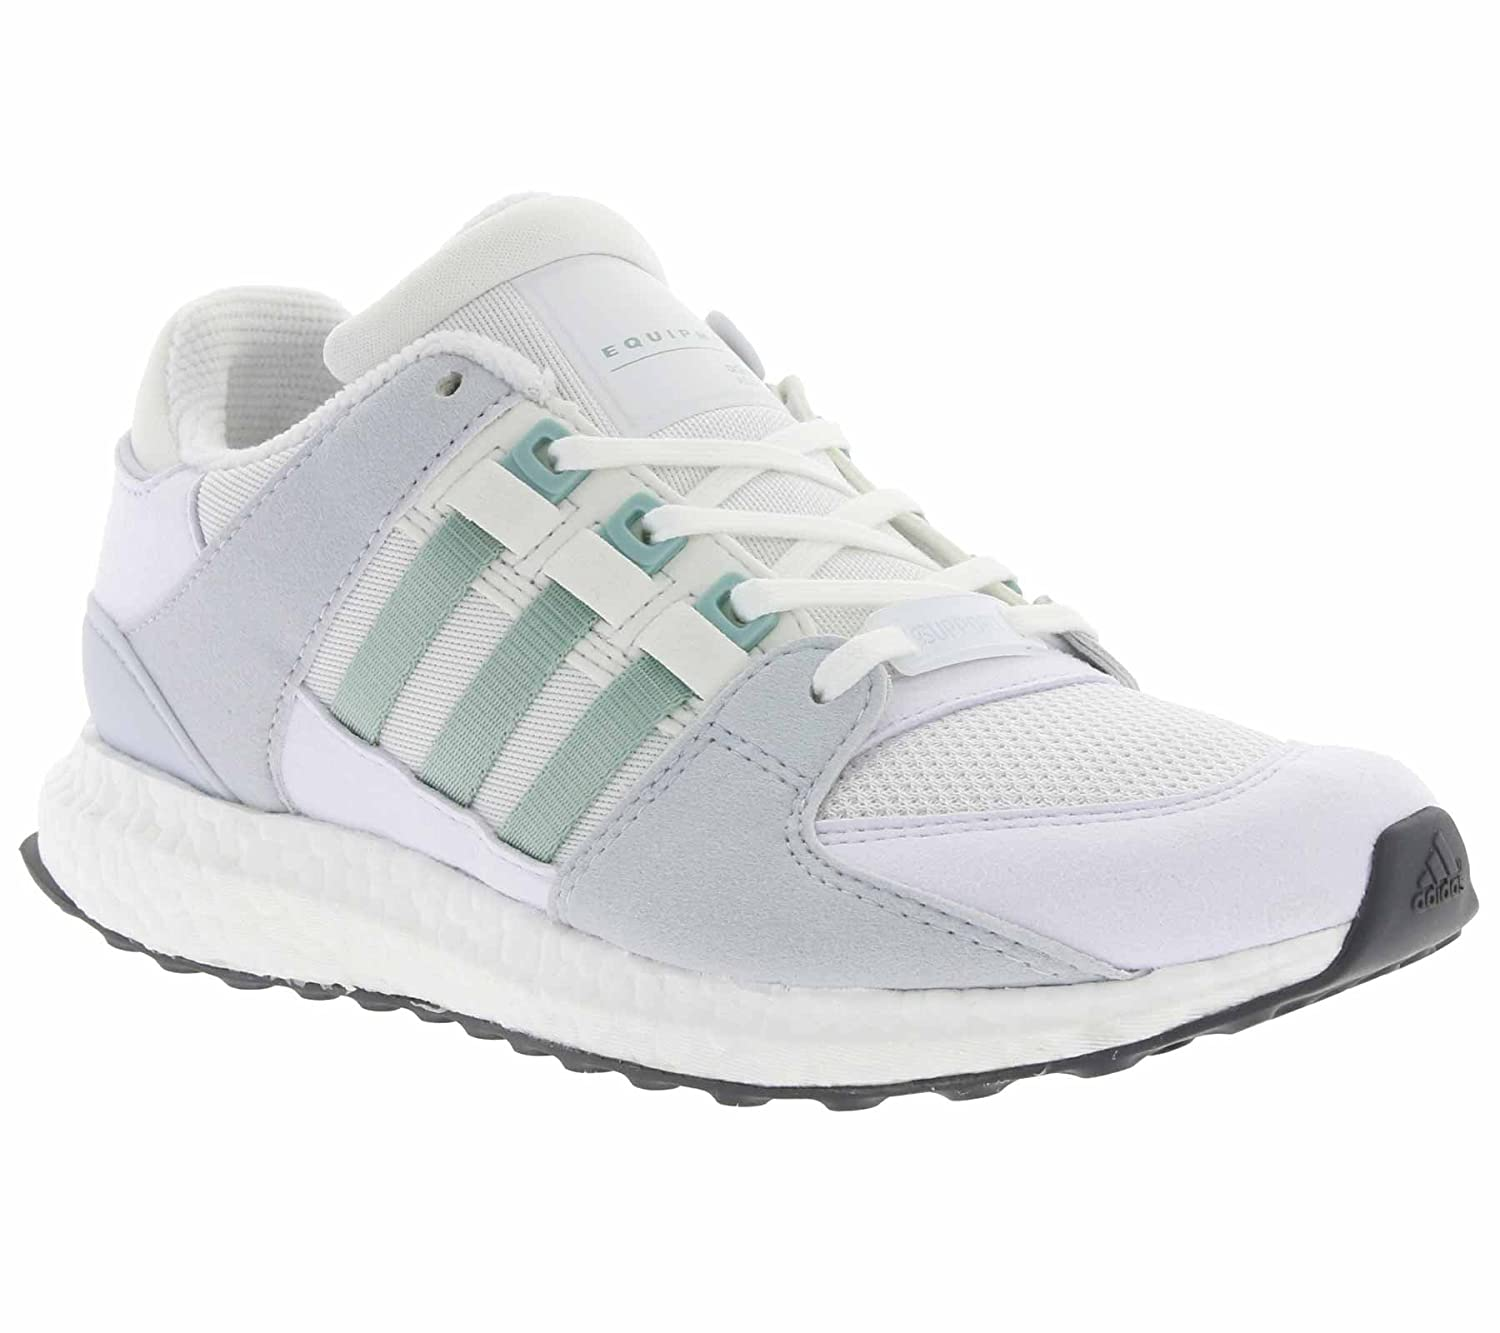 reputable site 0cd7e d5401 adidas Unisex Adults' EQT Support Ultra W 320 Trainers ...